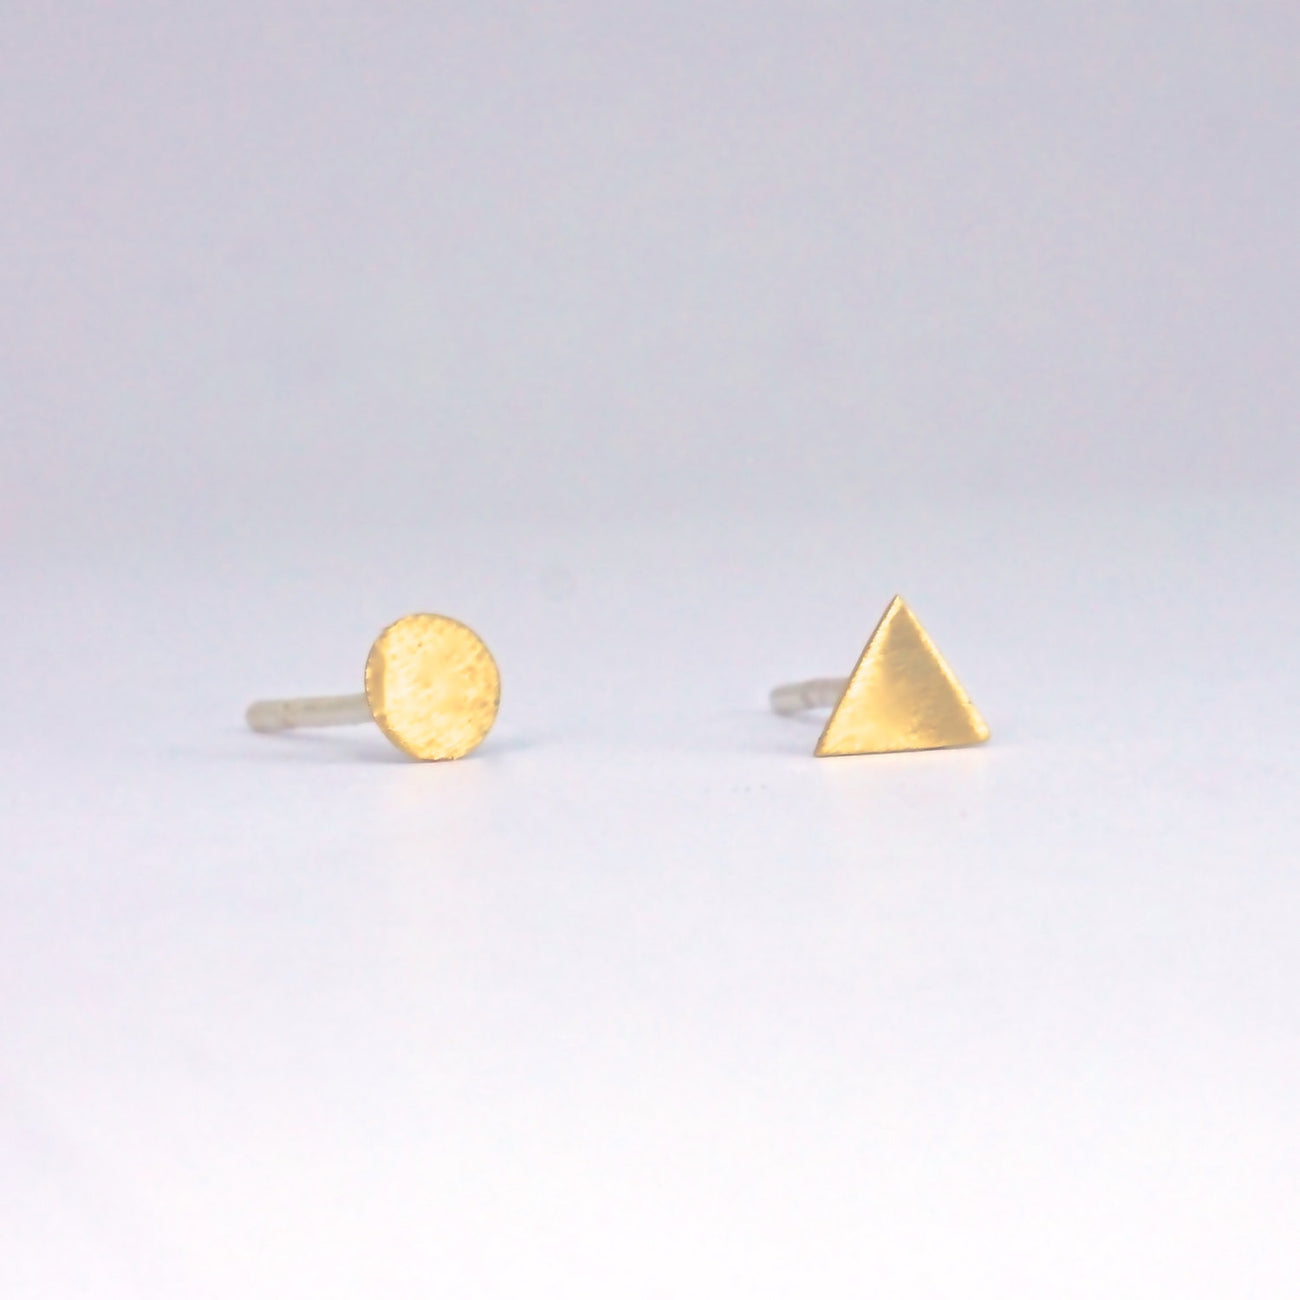 Creatively Mismatched, Hand-Crafted 4mm Circle & 4mm Triangle Stud Earrings - 0149 - Virginia Wynne Designs